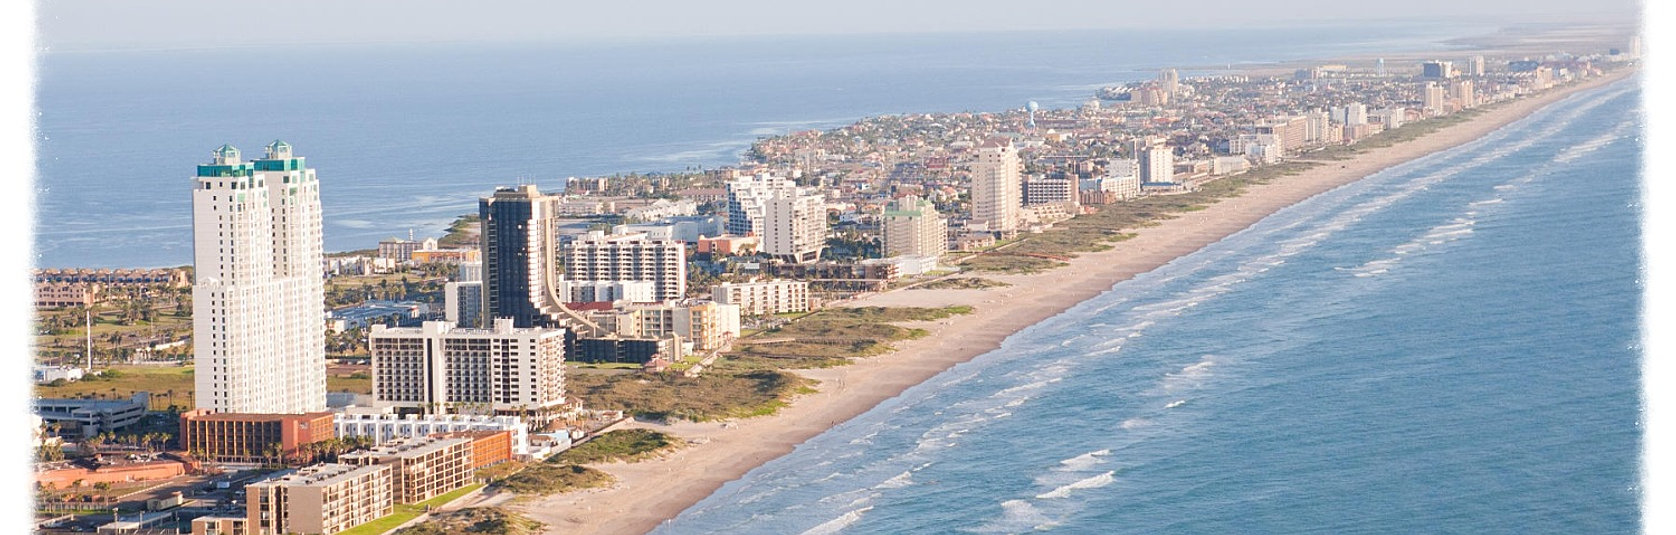 Padre Island Hotels On The Beach